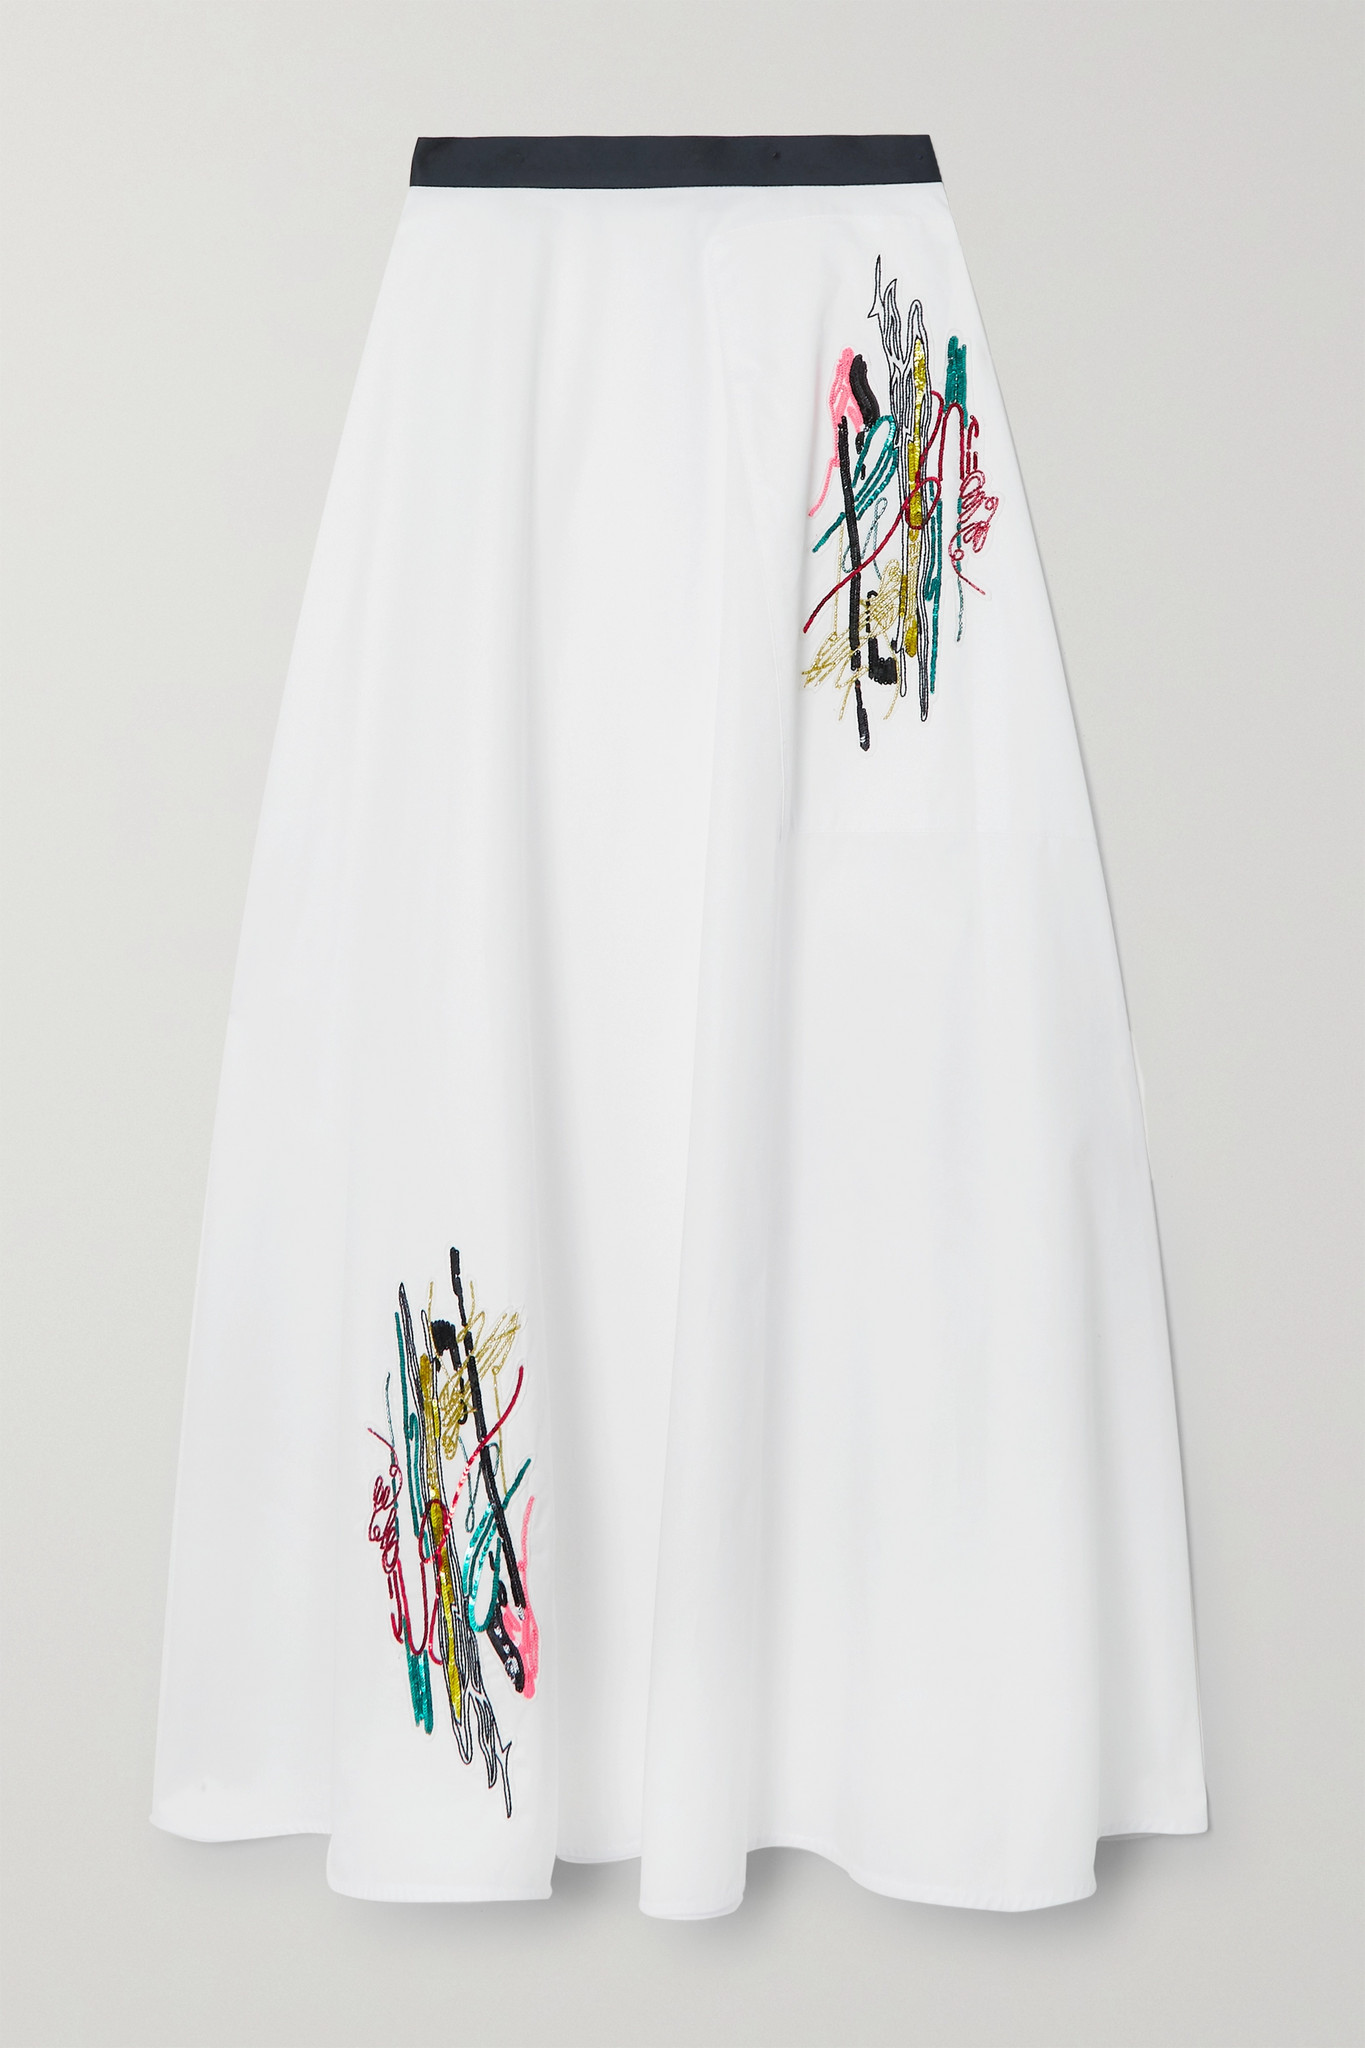 CHRISTOPHER KANE - Squiggle Embellished Cotton-poplin Skirt - White - IT38